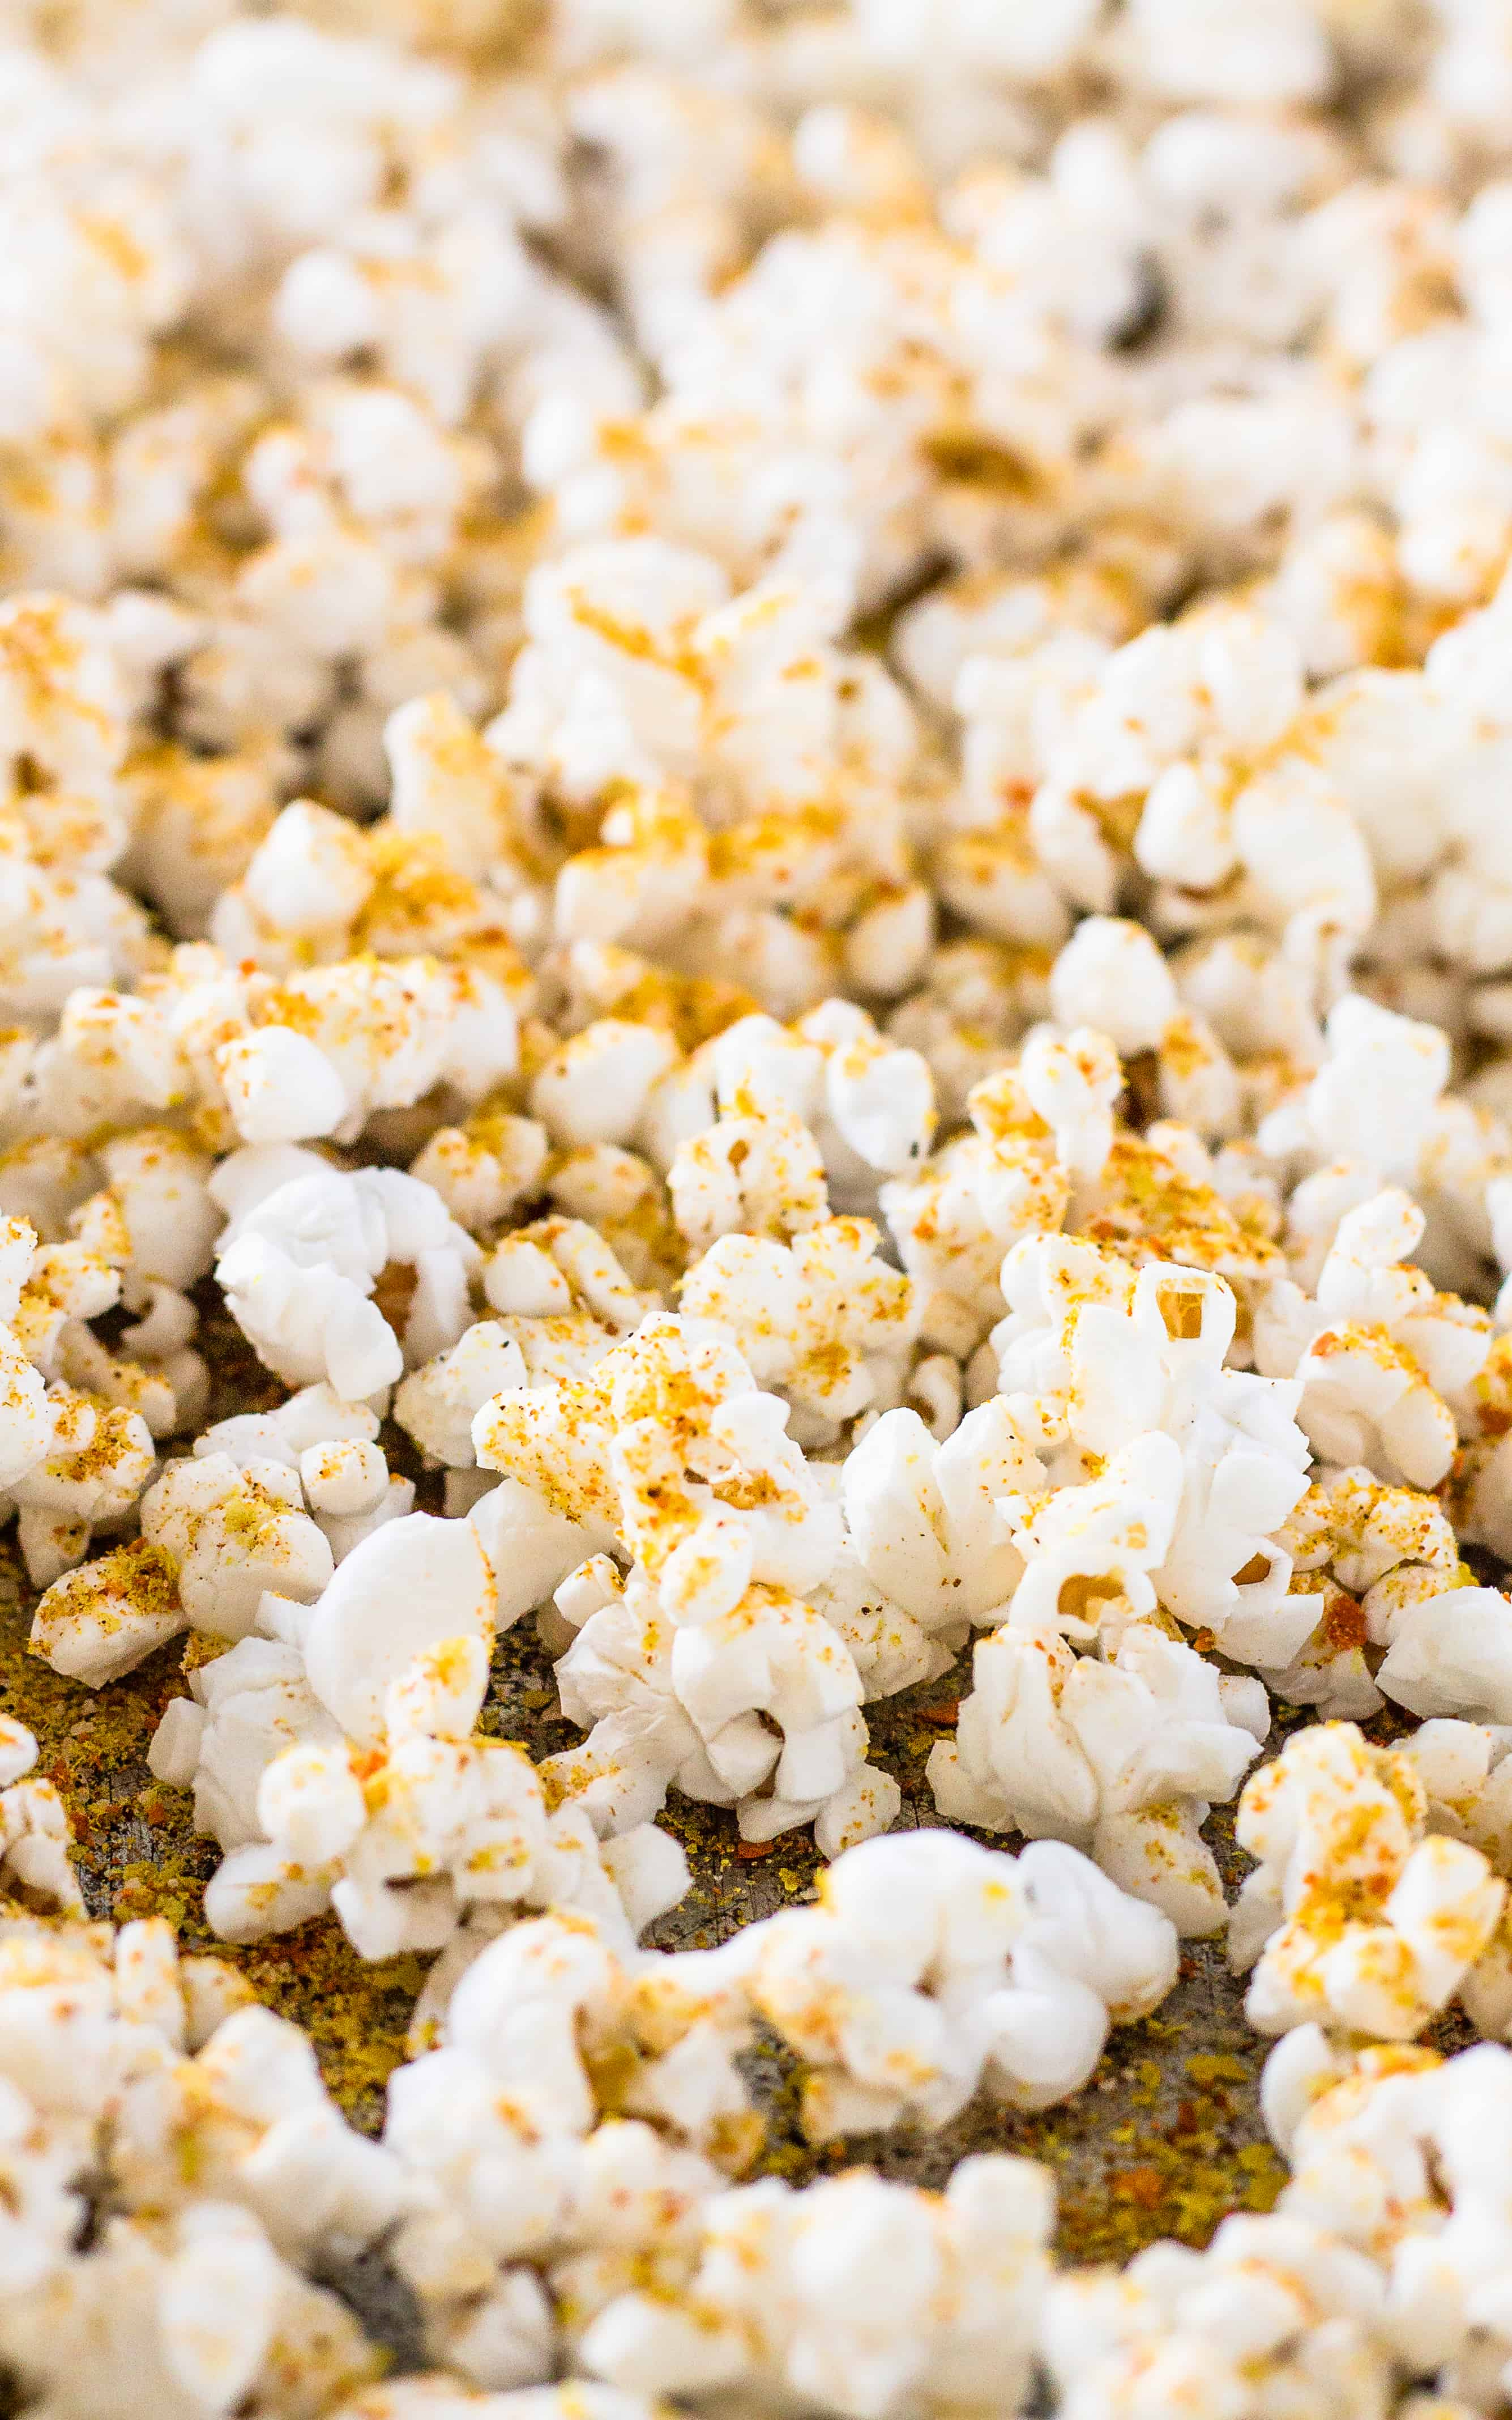 Spread the popcorn on the pan before sprinkling the Spicy Nacho Popcorn